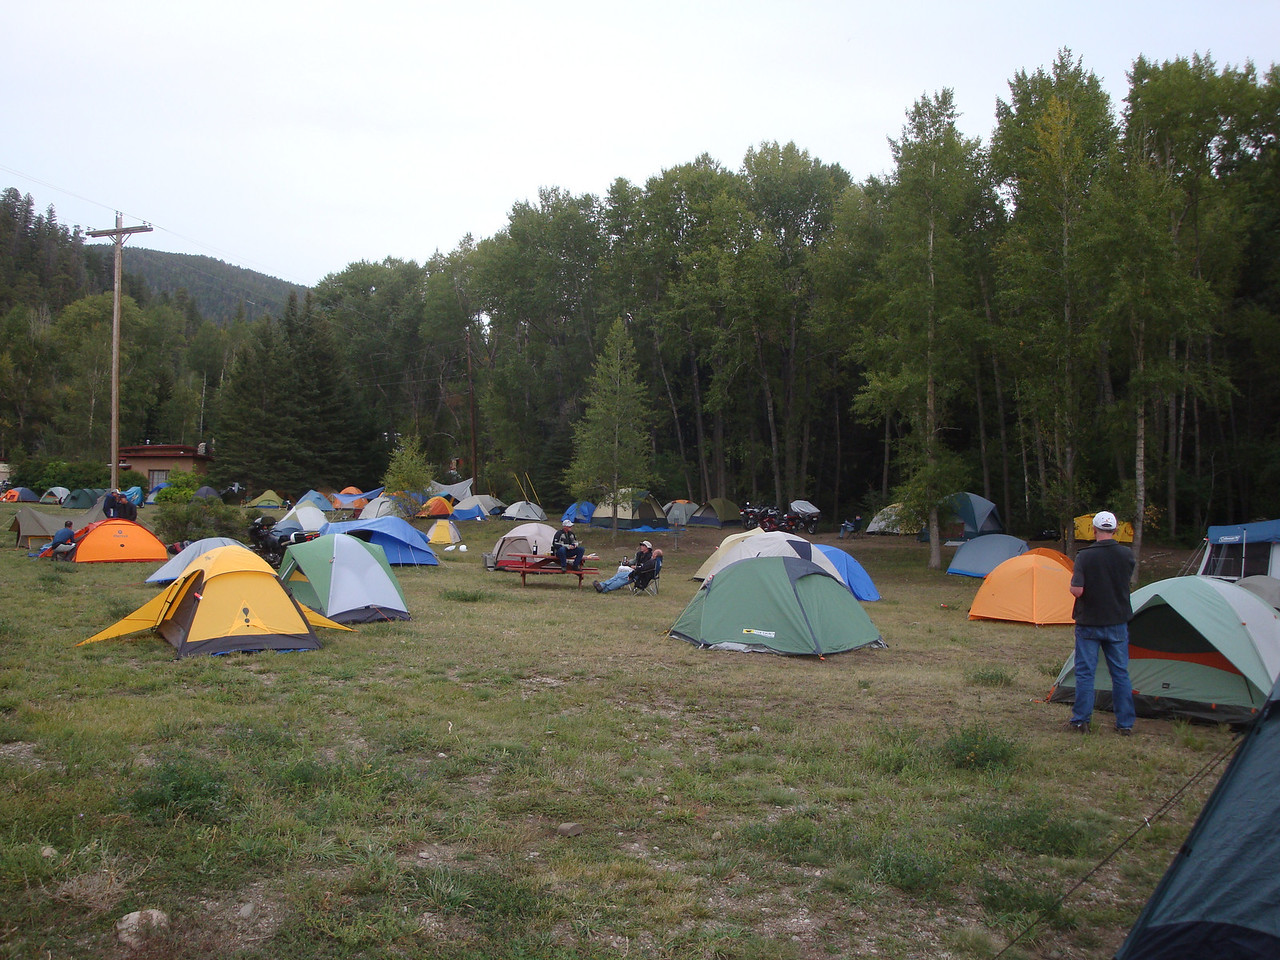 25th Annual Bavarian Mountain Weekend (BMW) Rally @ Sipapu - 2009-09-11 Friday afternoon camp coming together.